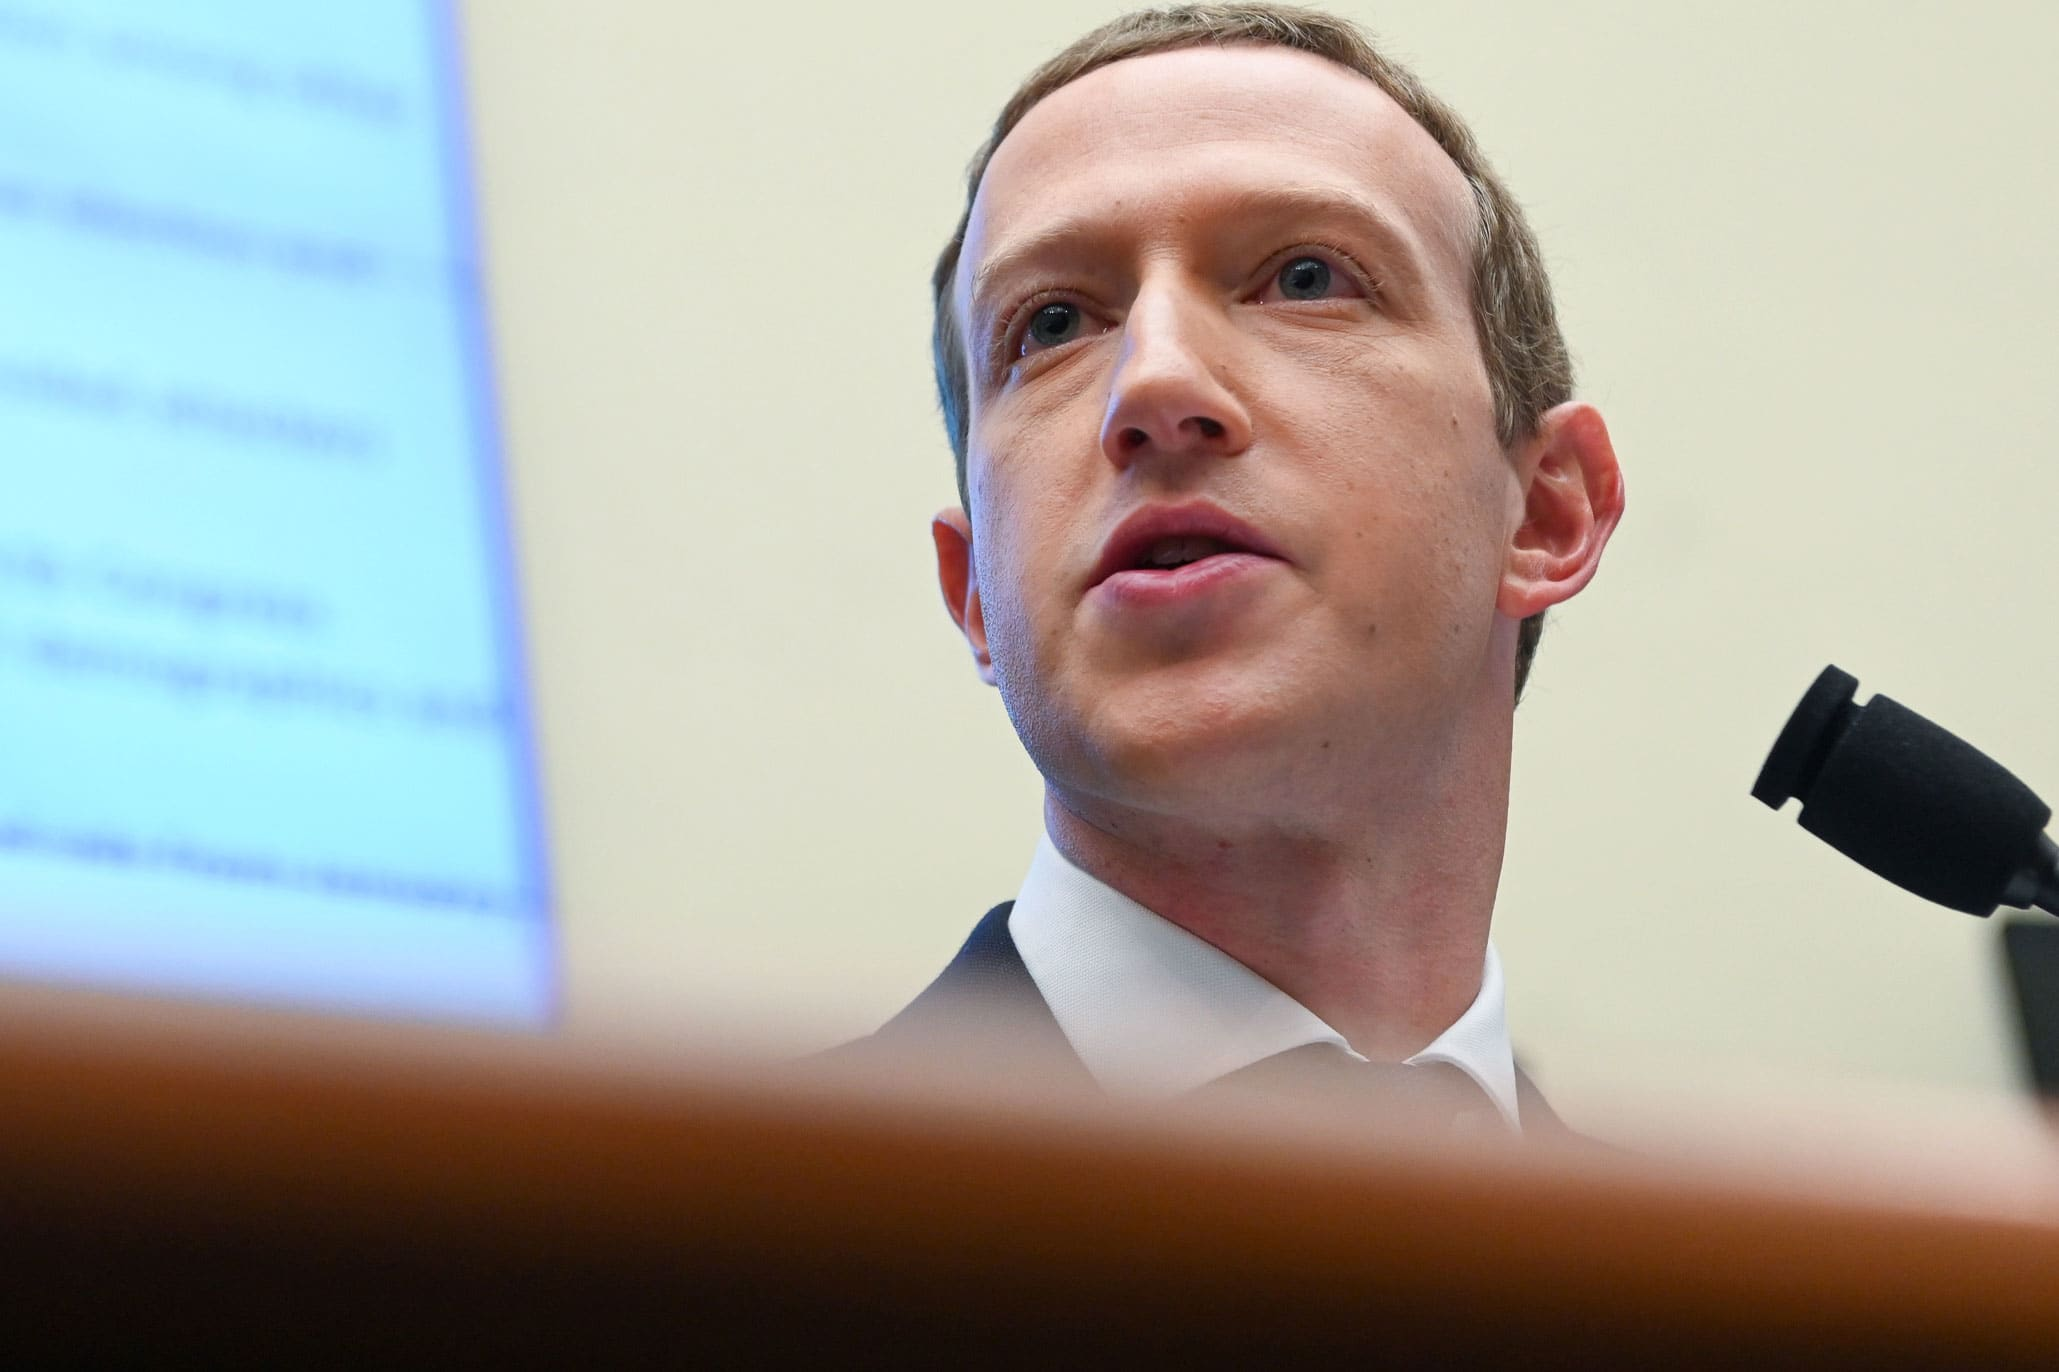 Facebook defends decision to bring content moderators back to offices despite Covid-19 risks